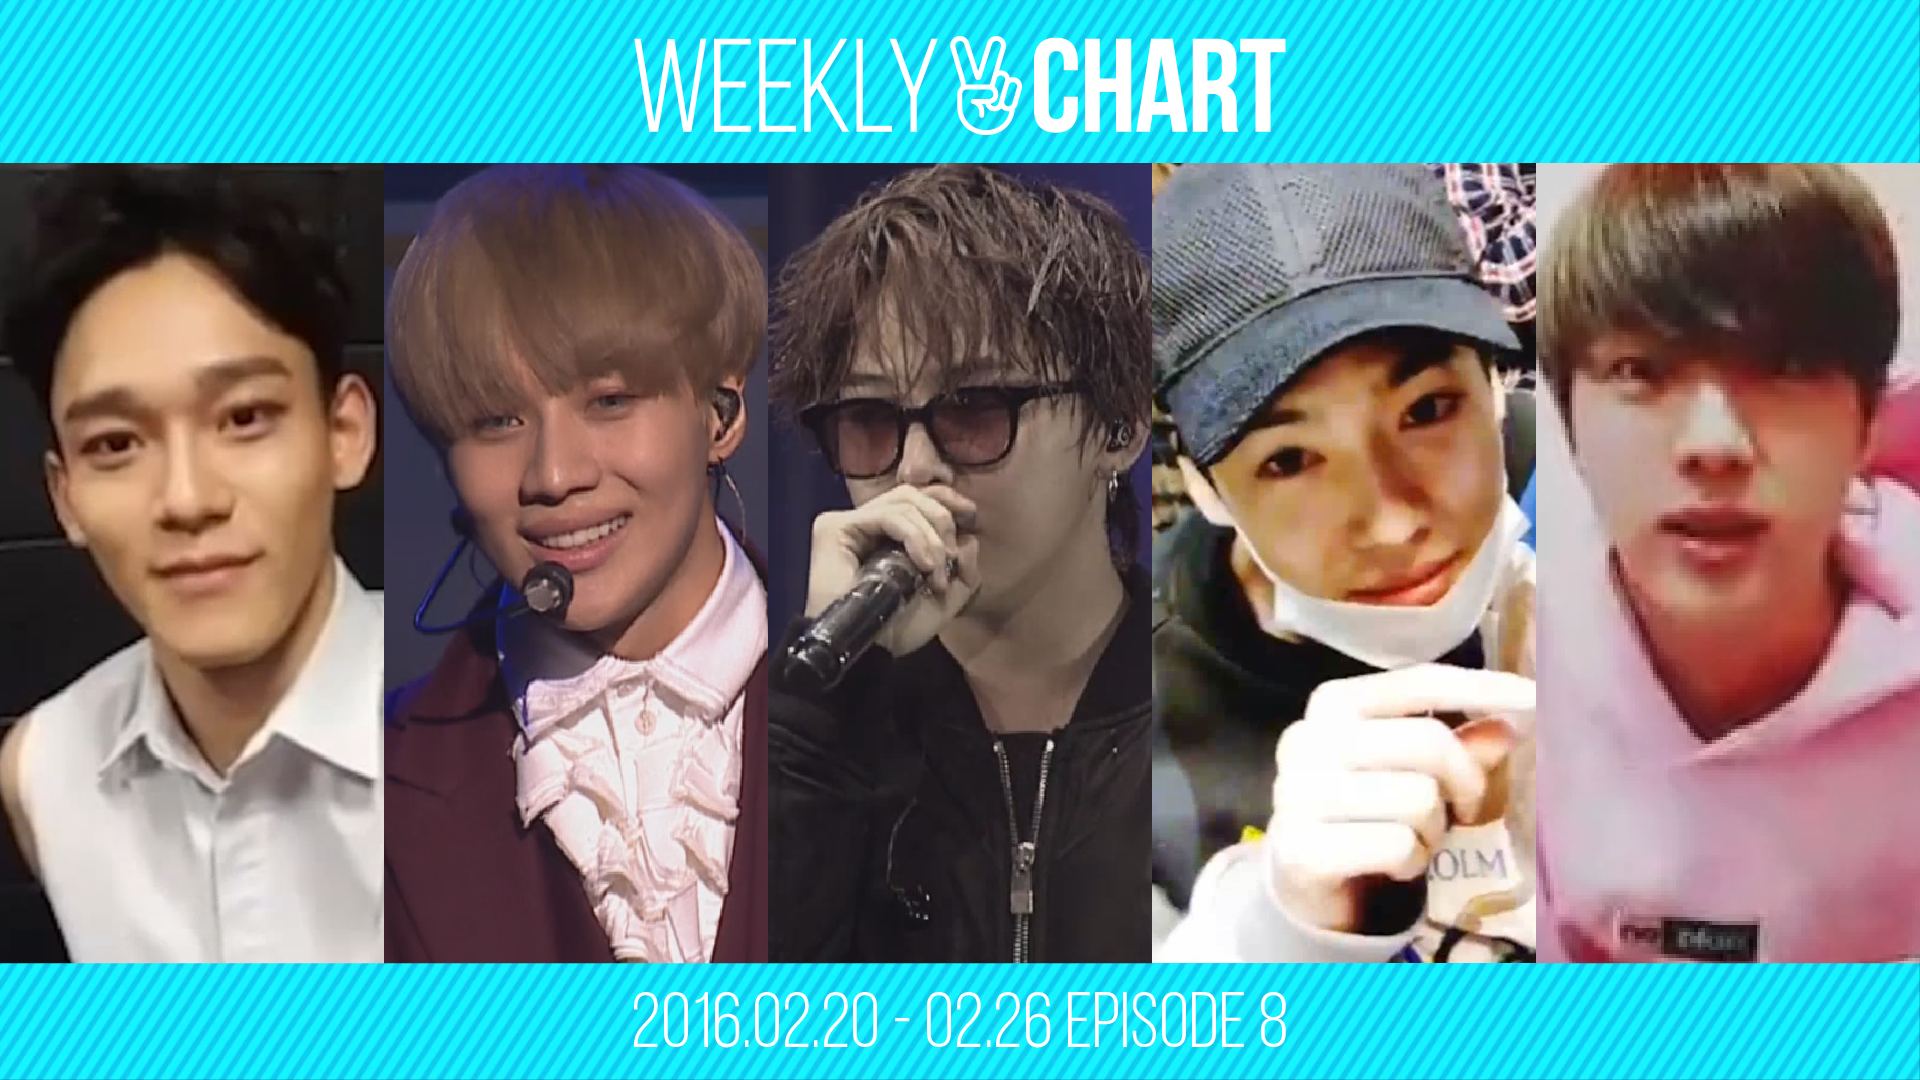 [WEEKLY V CHART] 2016.2.20 - 2.26 EPISODE